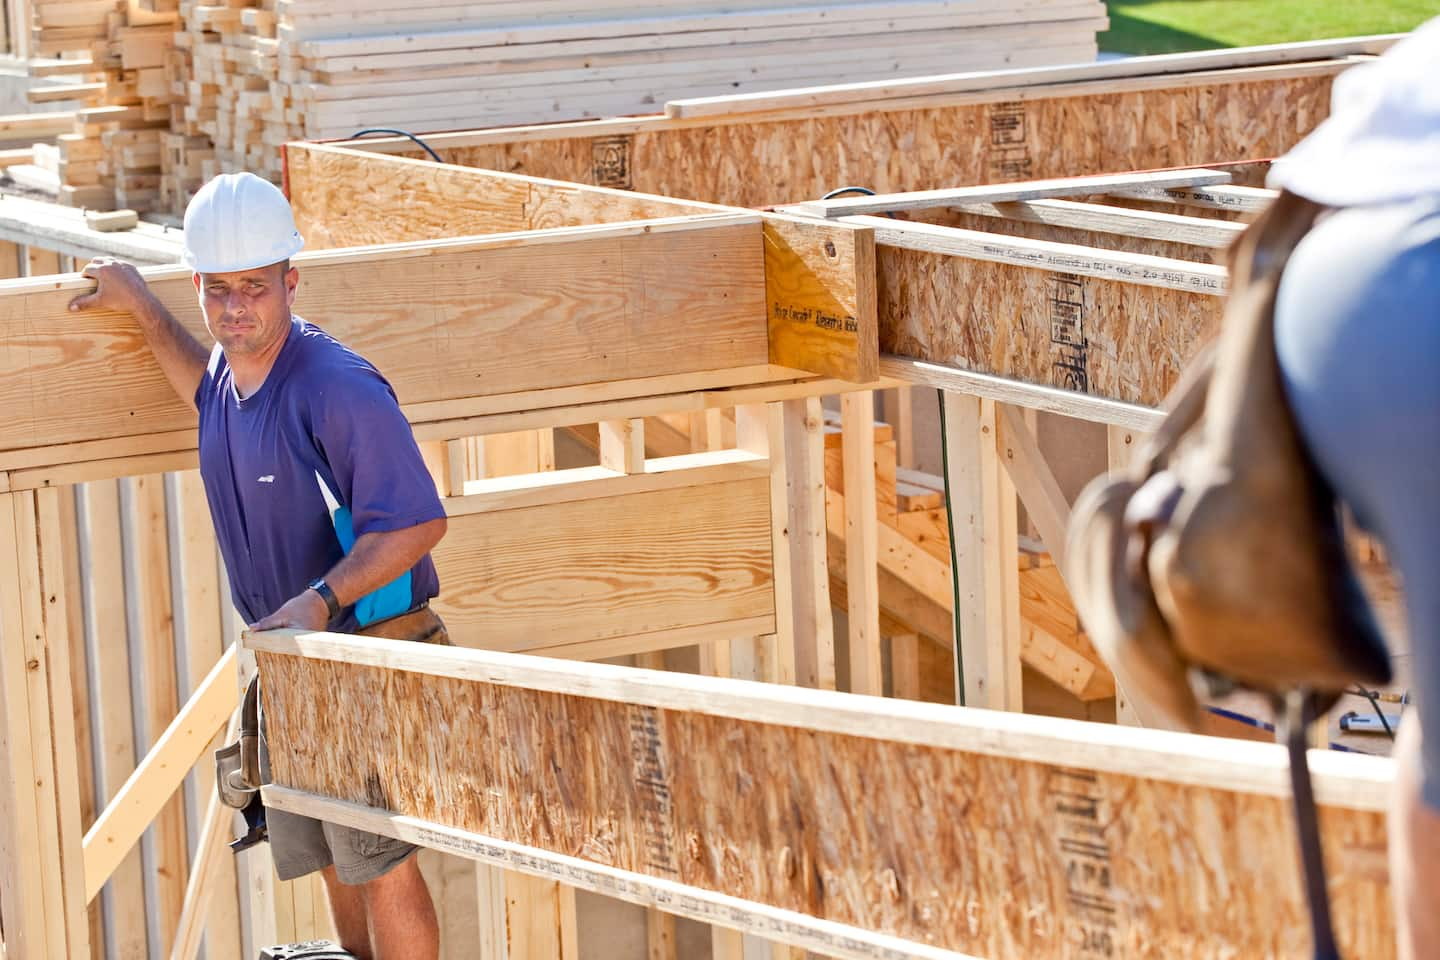 Hire A Homebuilder To Build Your Dream Home